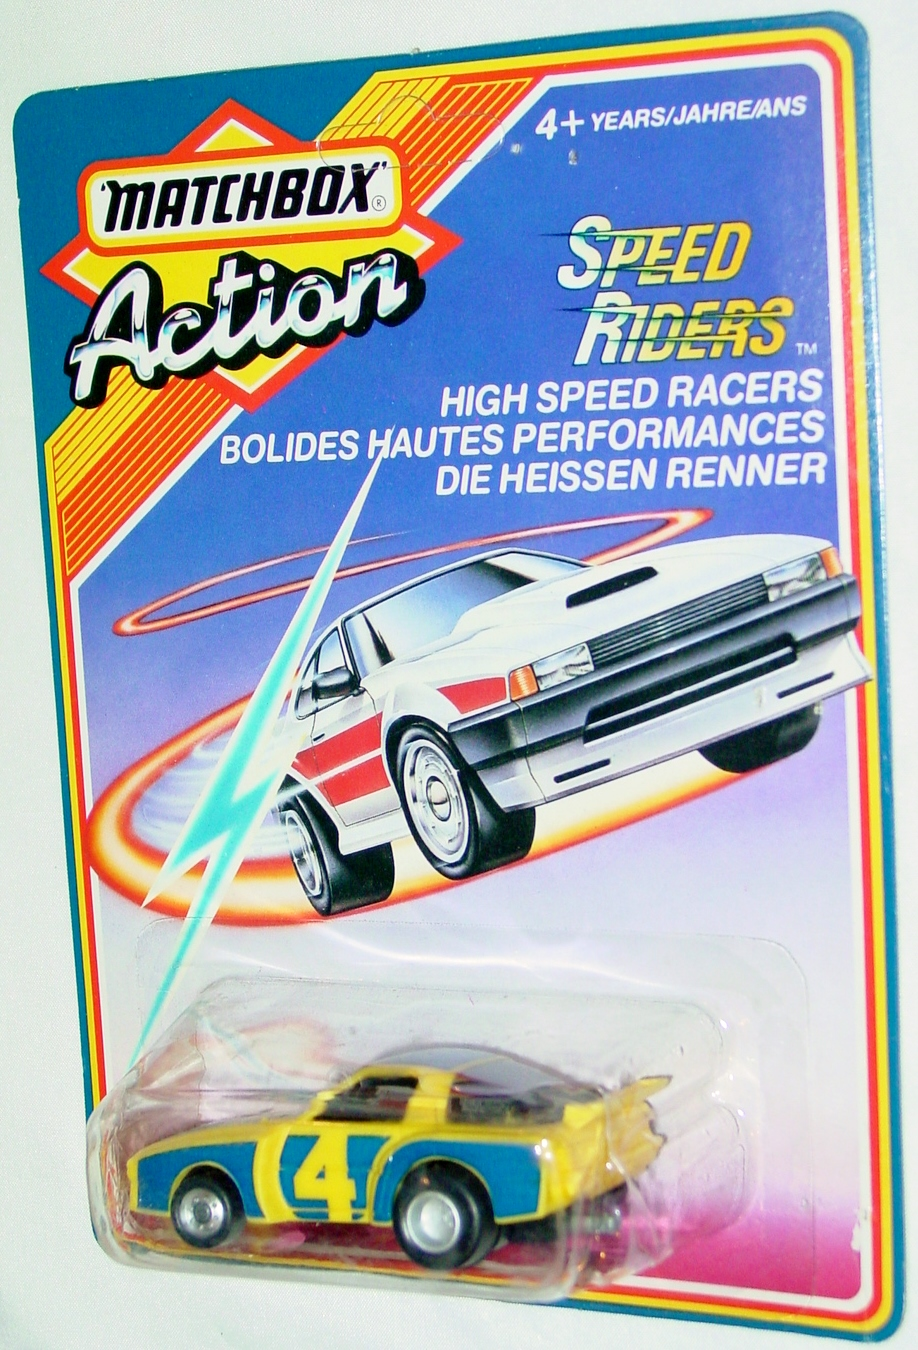 Offshore SuperFast - ACTION SPEED RIDERS Mazda Yellow 4